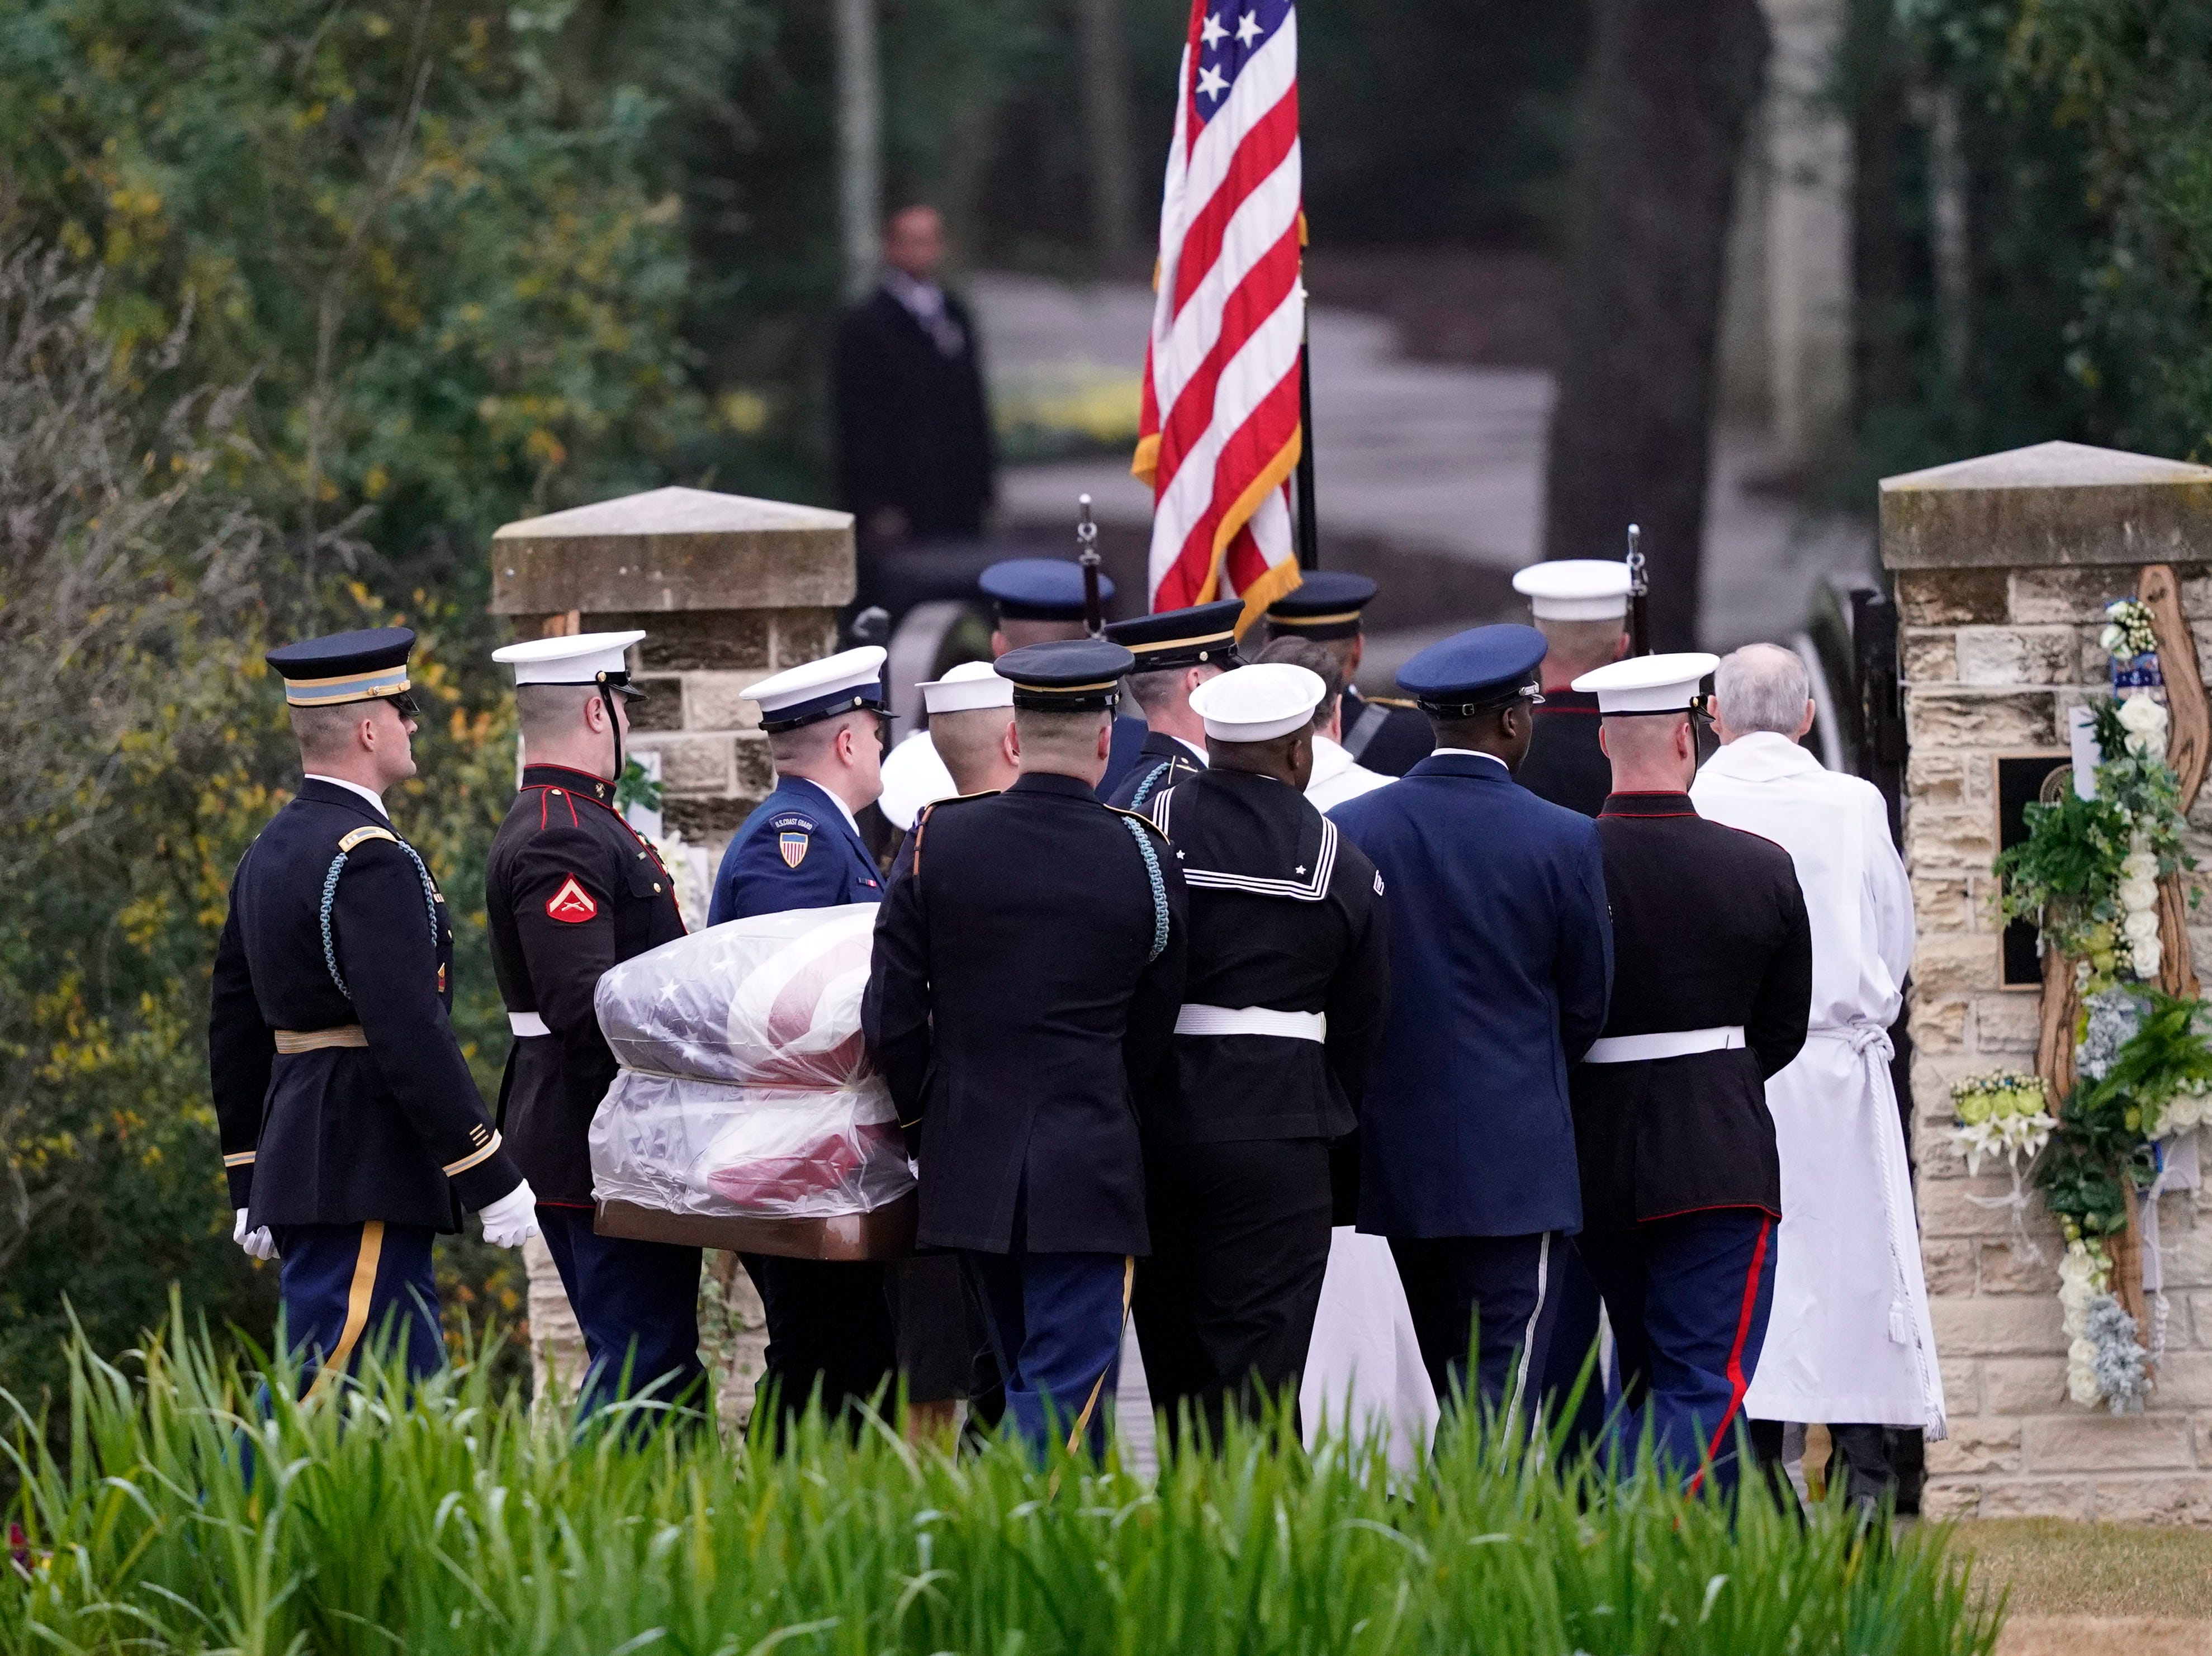 The flag-draped casket of former President George H.W. Bush is carried by a joint services military honor guard for burial at the George H.W. Bush Presidential Library and Museum on Dec. 6, 2018 in College Station, Texas. President Bush will be buried at his final resting place at the George H.W. Bush Presidential Library at Texas A&M University in College Station, Texas. A WWII combat veteran, Bush served as a member of Congress from Texas, ambassador to the United Nations, director of the CIA, vice president and 41st president of the United States.